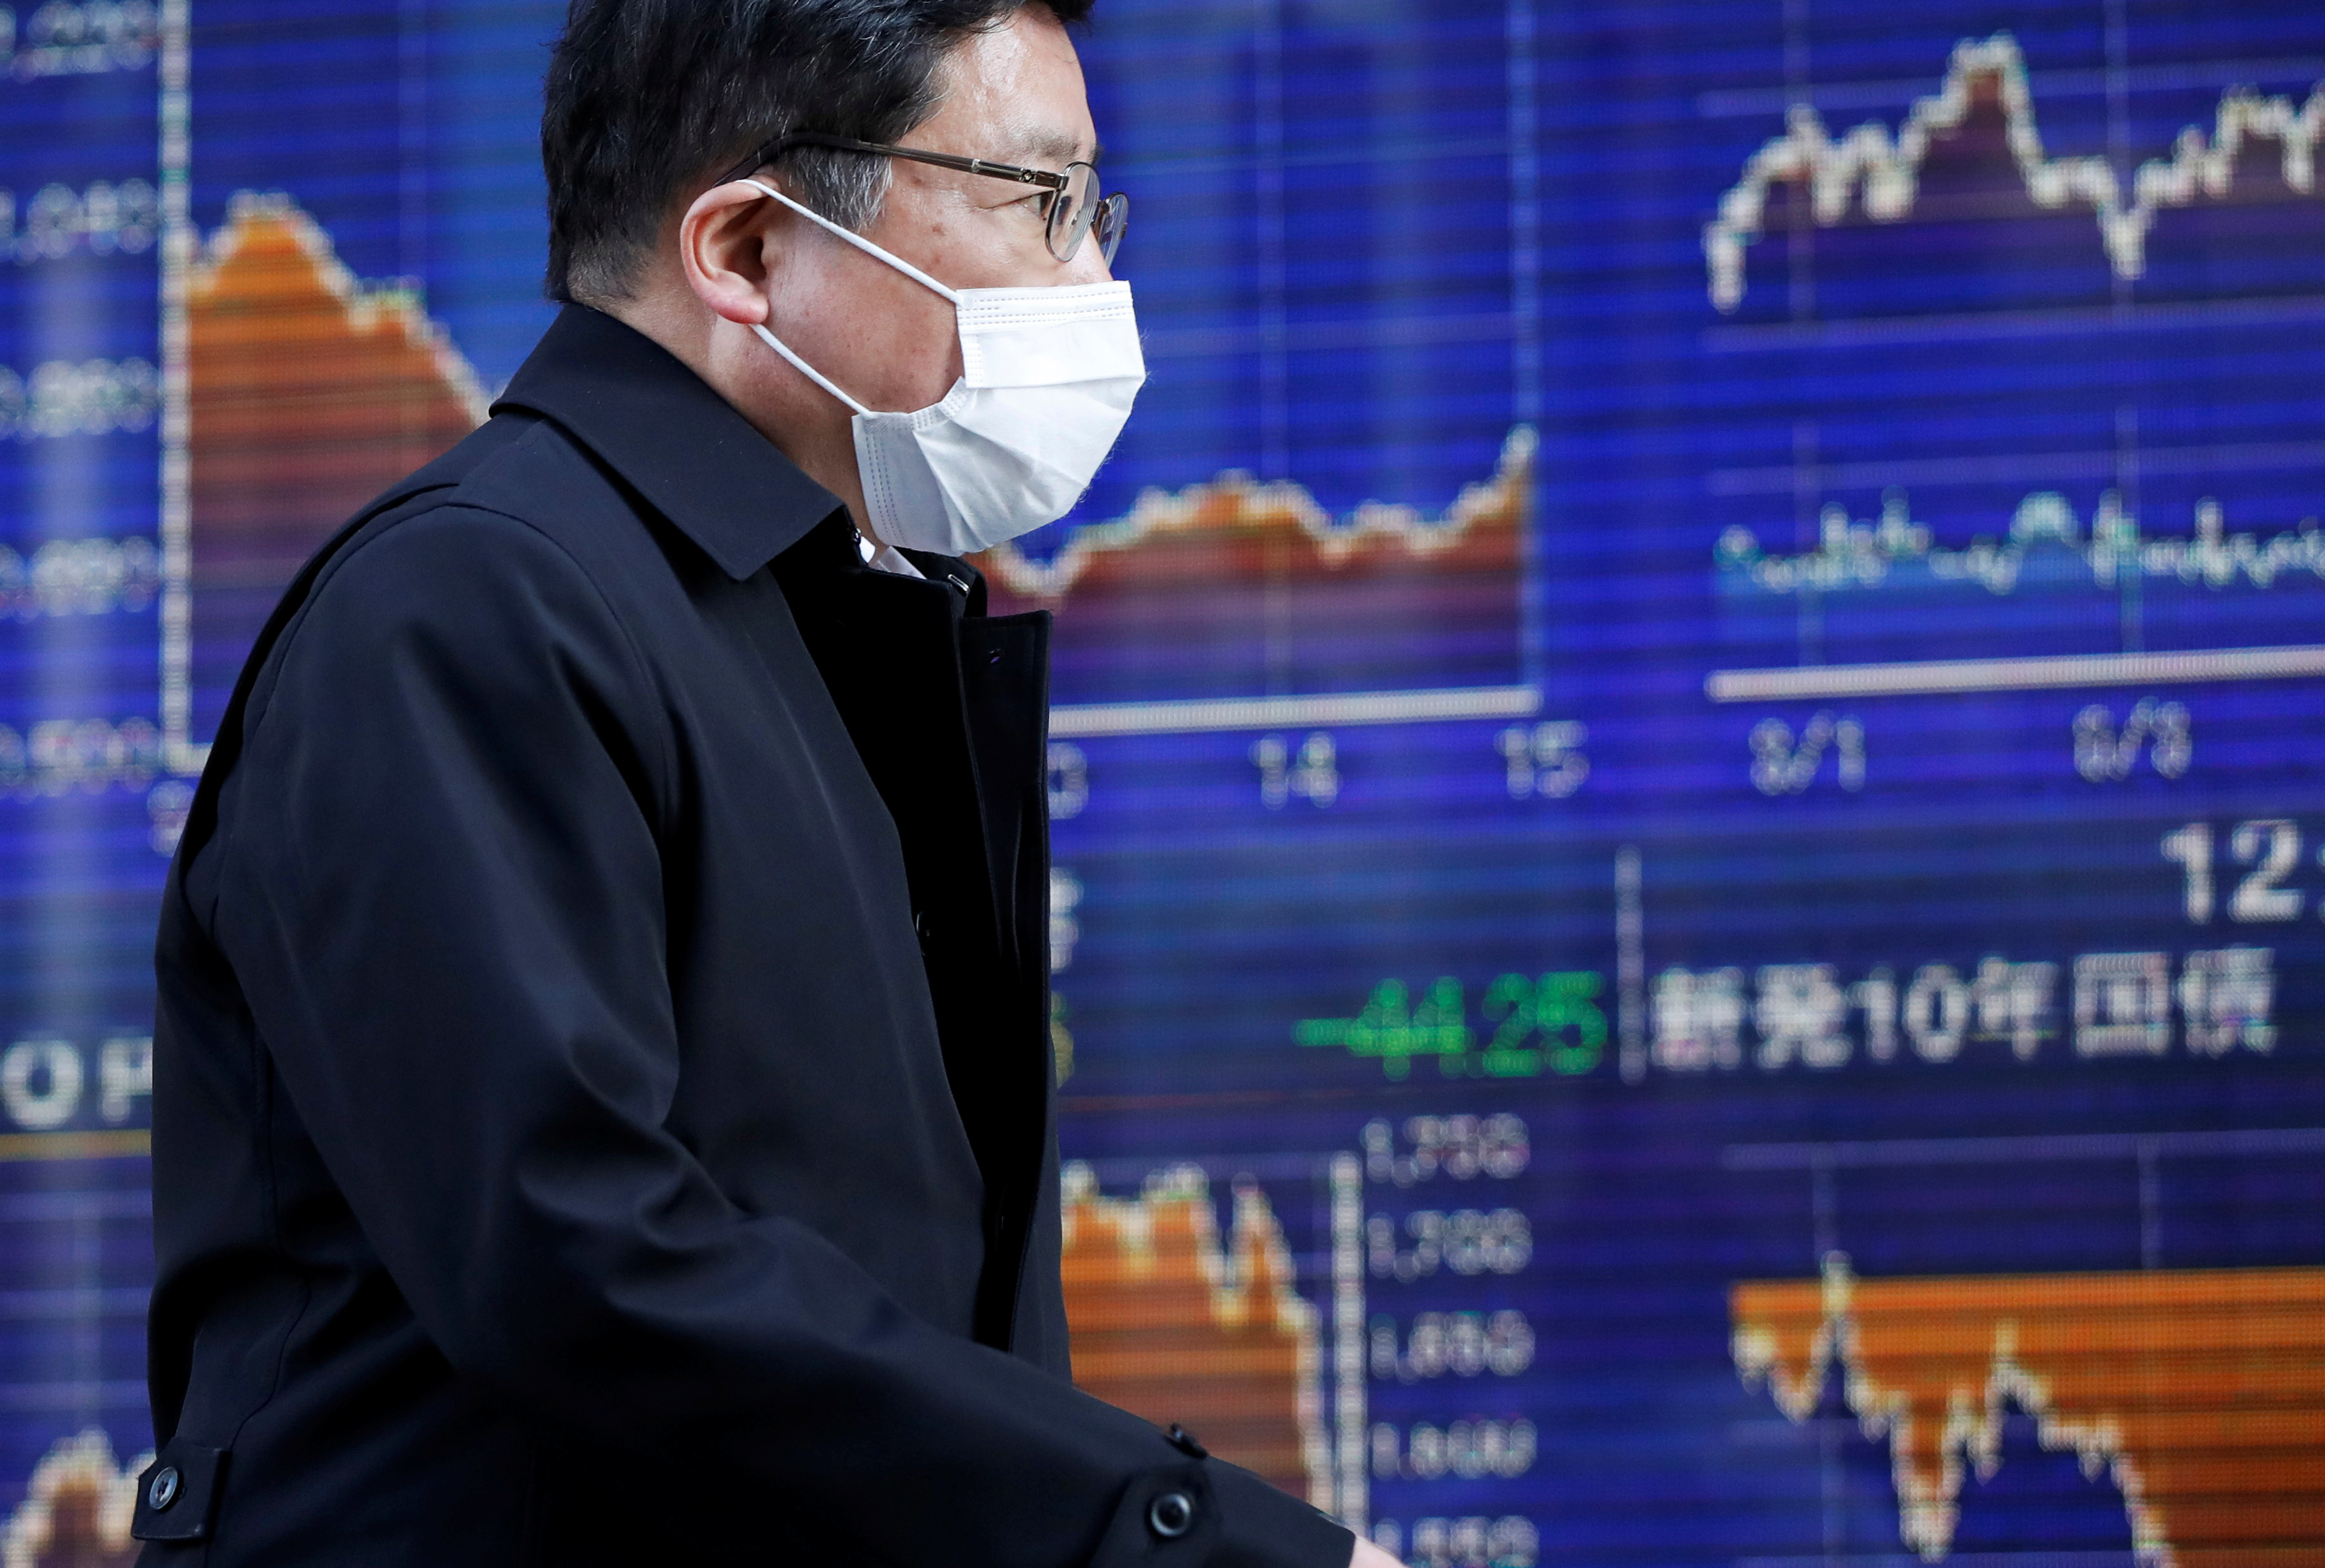 A passerby wearing a protective face mask, following an outbreak of the coronavirus, walks past an electronic board showing the graphs of the recent movements of Japan's Nikkei share average outside a brokerage in Tokyo, Japan March 6, 2020. REUTERS/Issei Kato/File photo